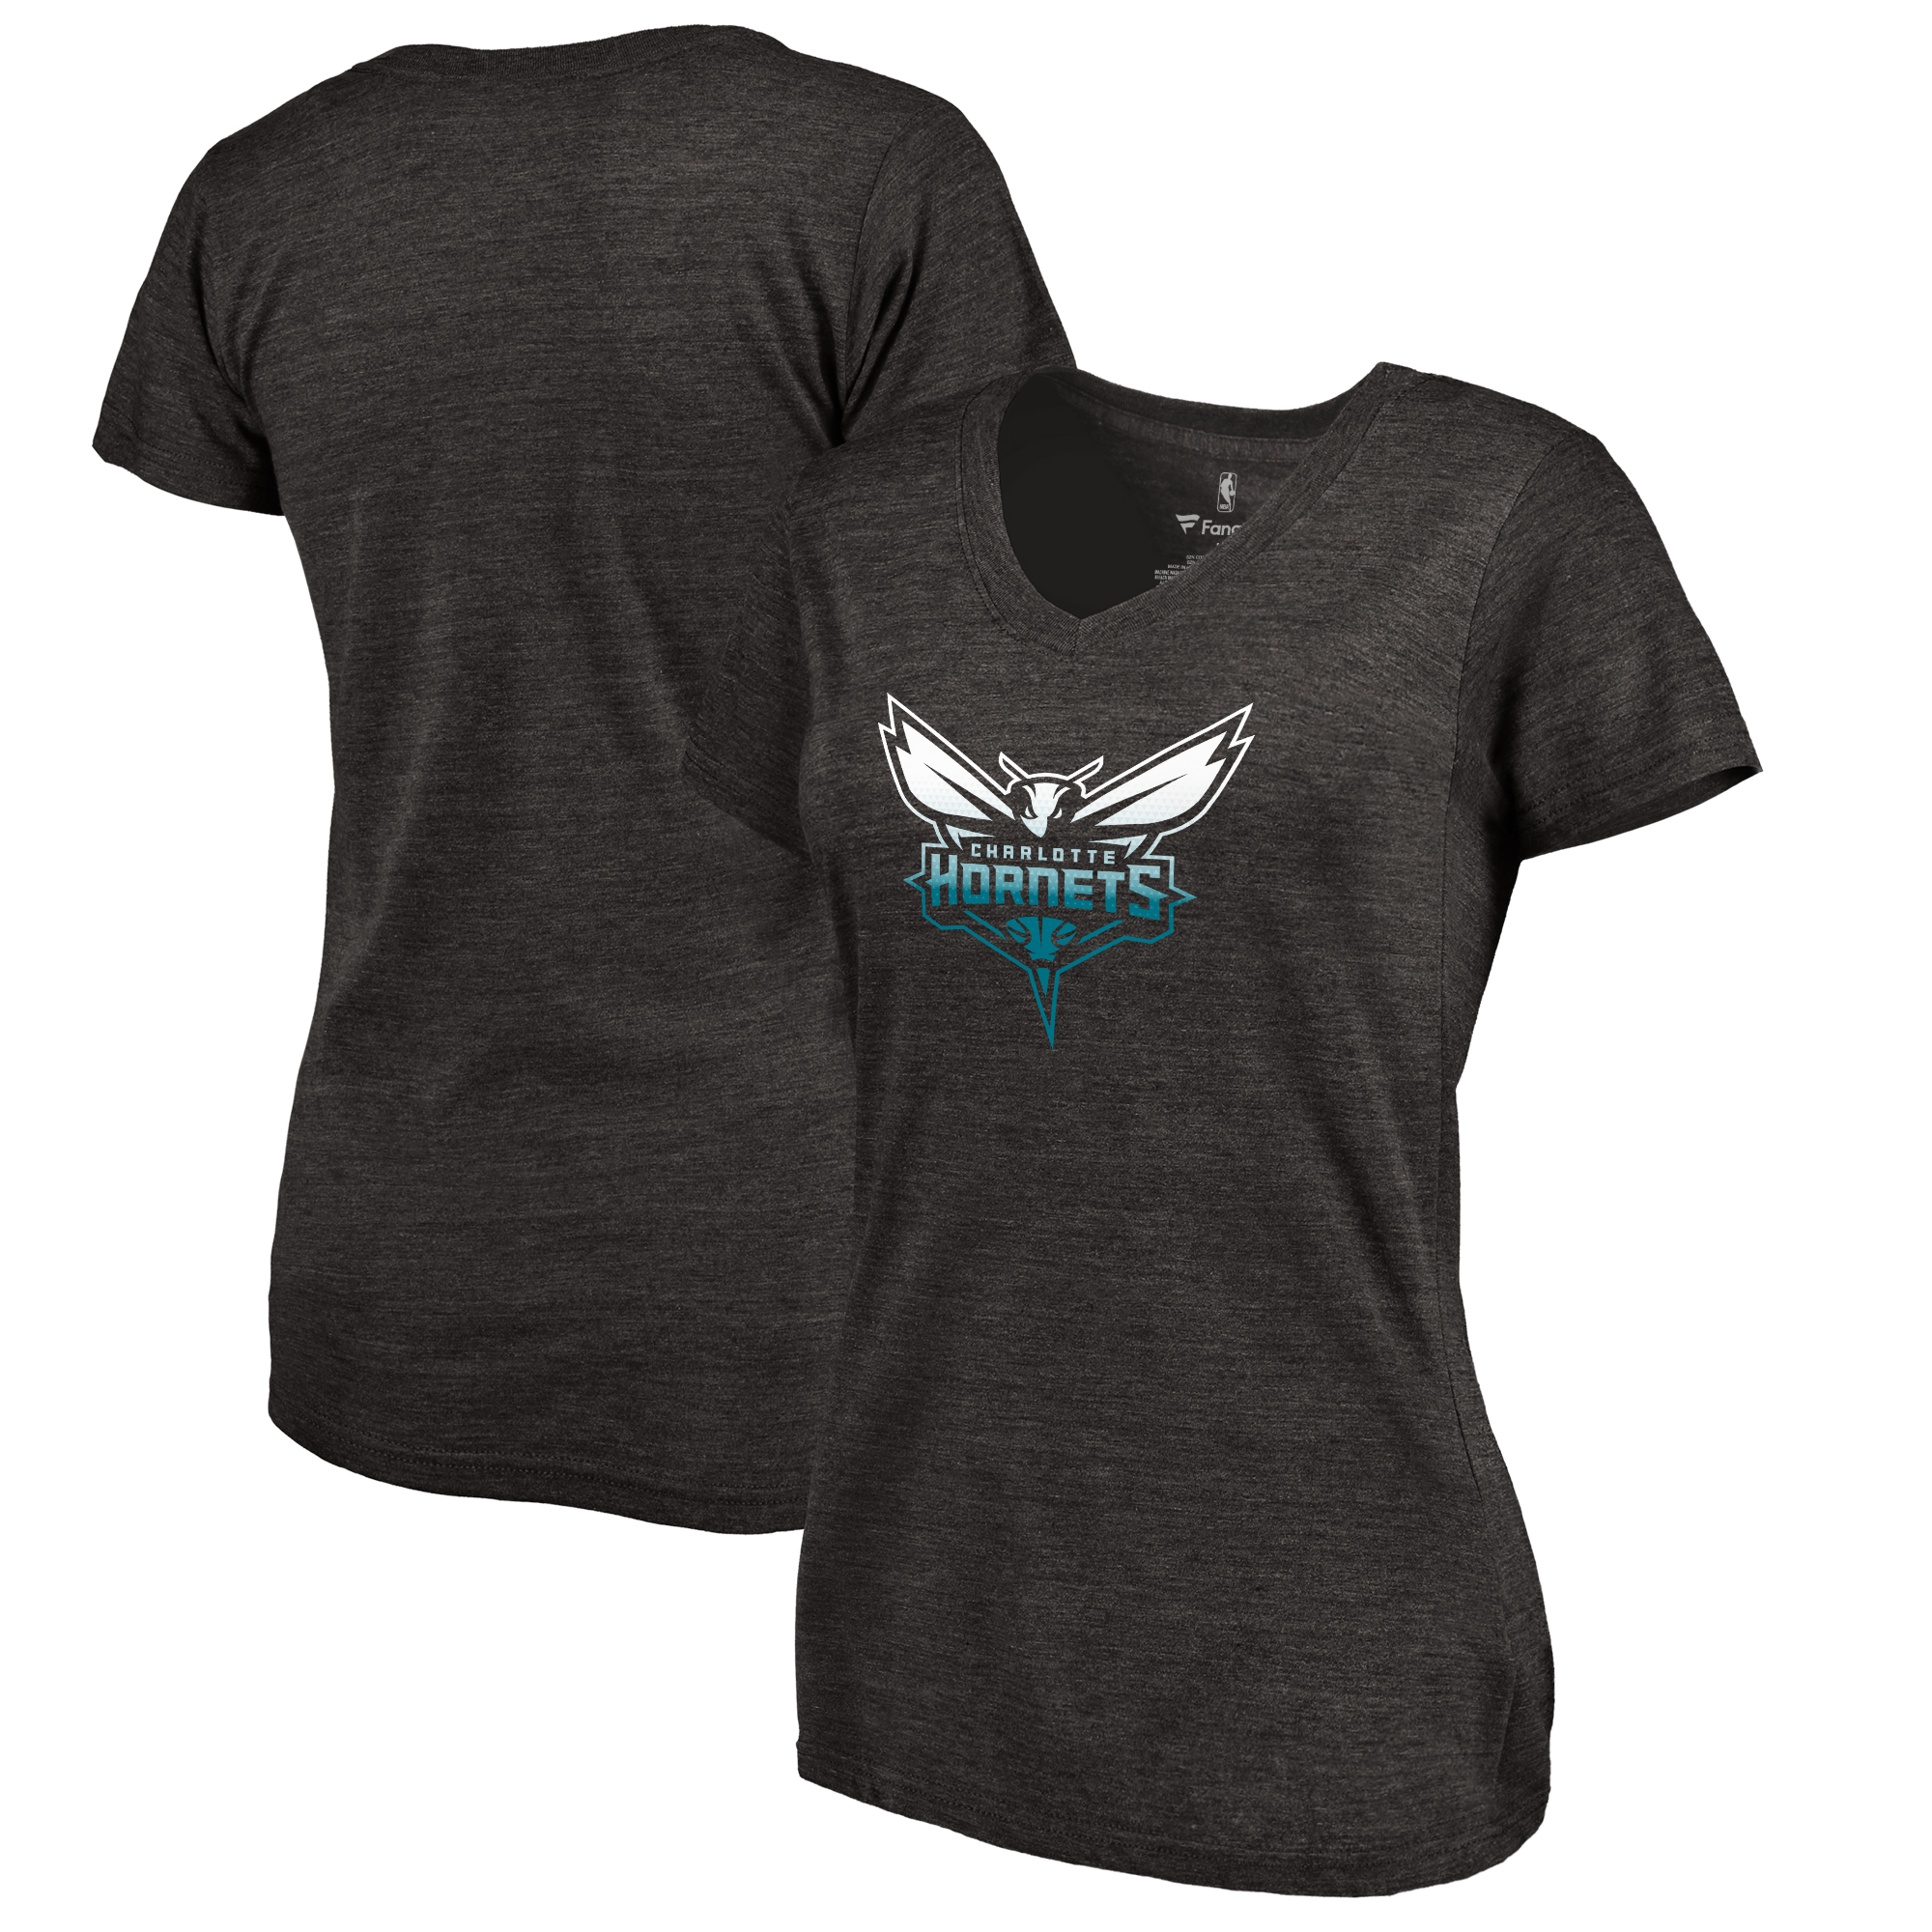 Charlotte Hornets Fanatics Branded Women's Gradient Logo Tri-Blend T-Shirt - Black